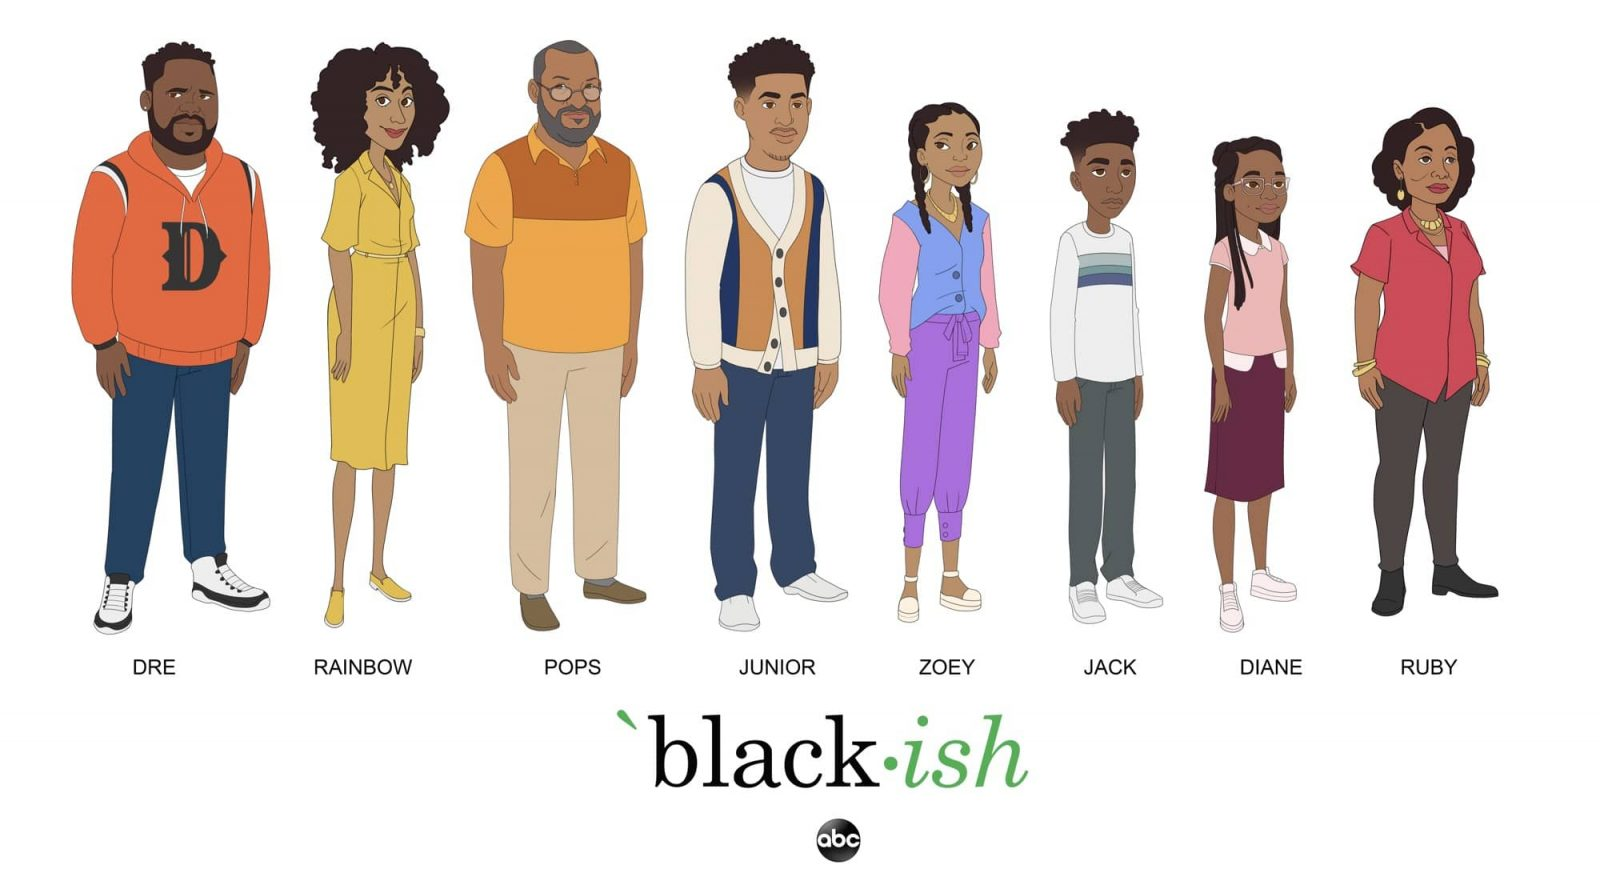 """BLACK-ISH - The Johnsons and """"black-ish"""" return to ABC with a special one-hour television special on SUNDAY, OCT. 4 (10:00-11:00 p.m. EDT), on ABC. The two back-to-back episodes, which will air ahead of the official season seven premiere on WEDNESDAY, OCT 21 (9:30-10:00 p.m. EDT), will follow the Johnsons as they navigate the upcoming election, with Junior (Marcus Scribner) embarking on his journey as a first-time voter and Dre (Anthony Anderson) launching an exploration into local politics. The special will be presented in part as an animated episode. (ABC/Smiley Guy Studios) BLACK-ISH"""